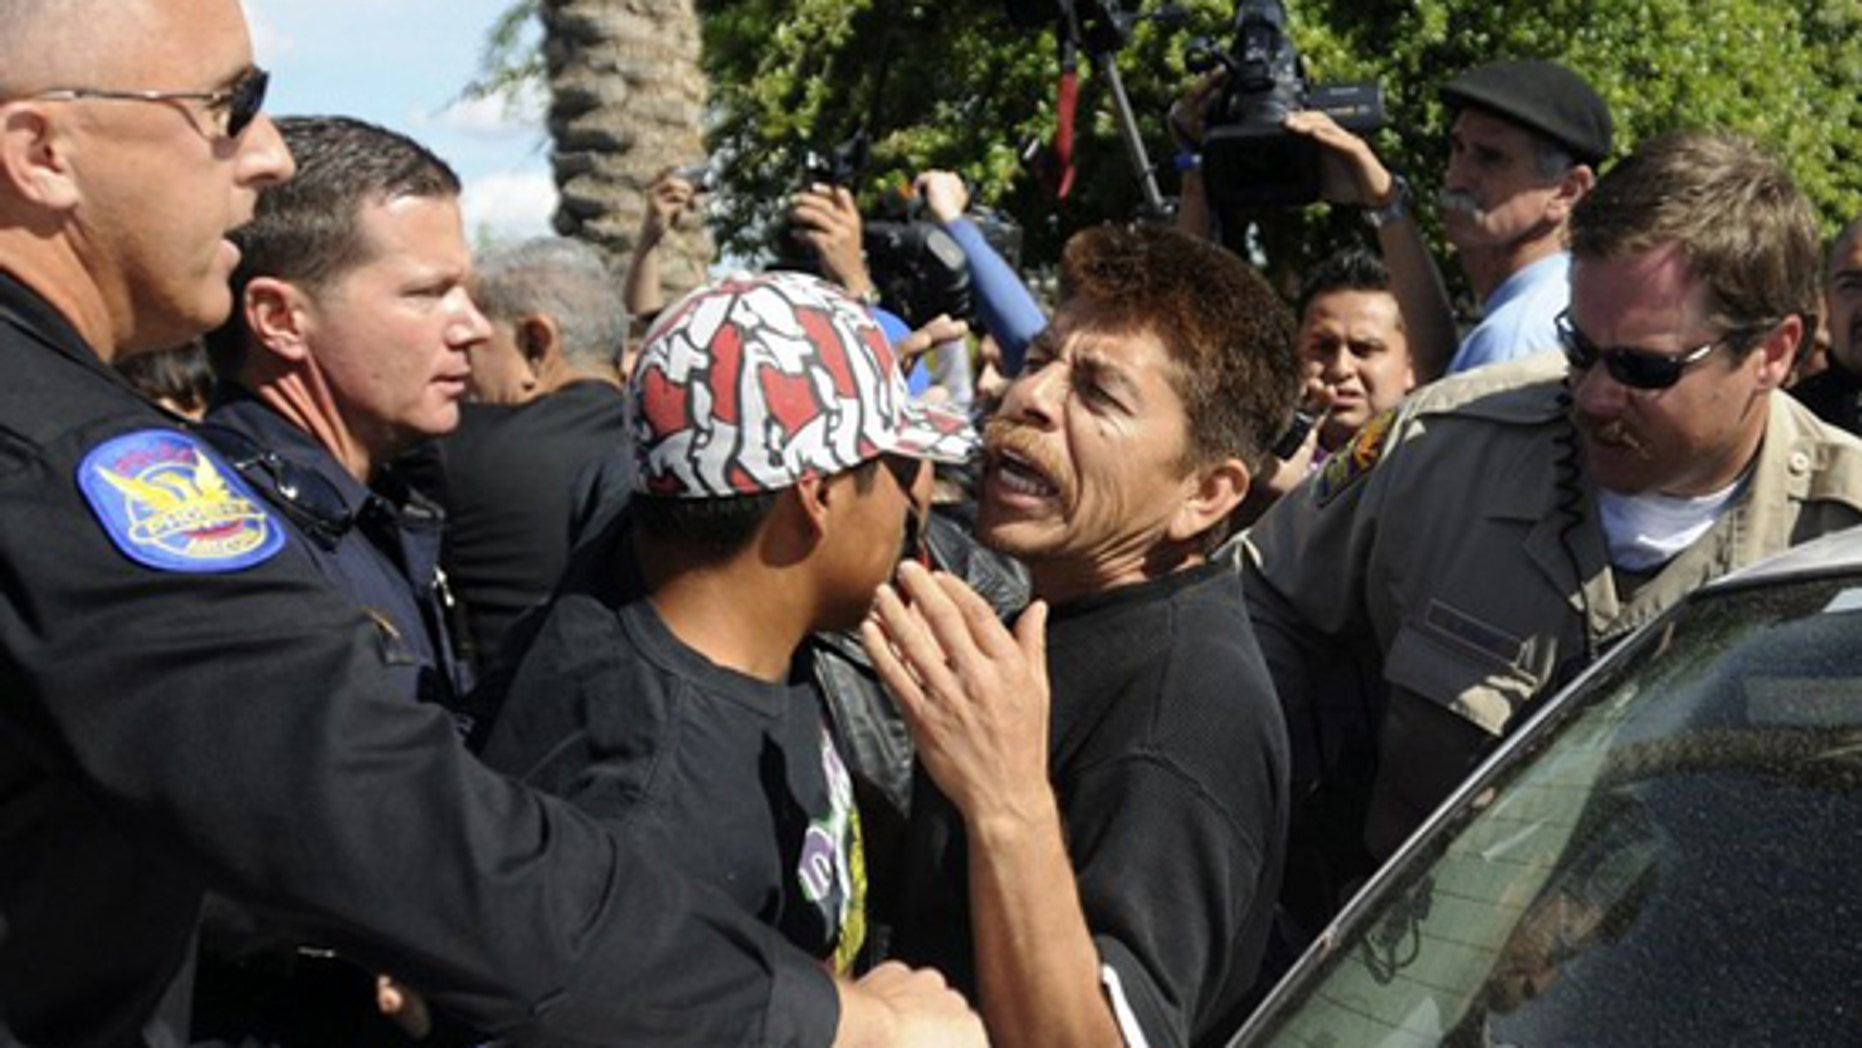 Protesters interact with police during a demonstration outside the Arizona State Capitol in Phoenix, Arizona, April 23, 2010 in protest of an immigration law signed by Arizona Governor Jan Brewer. (Reuters)